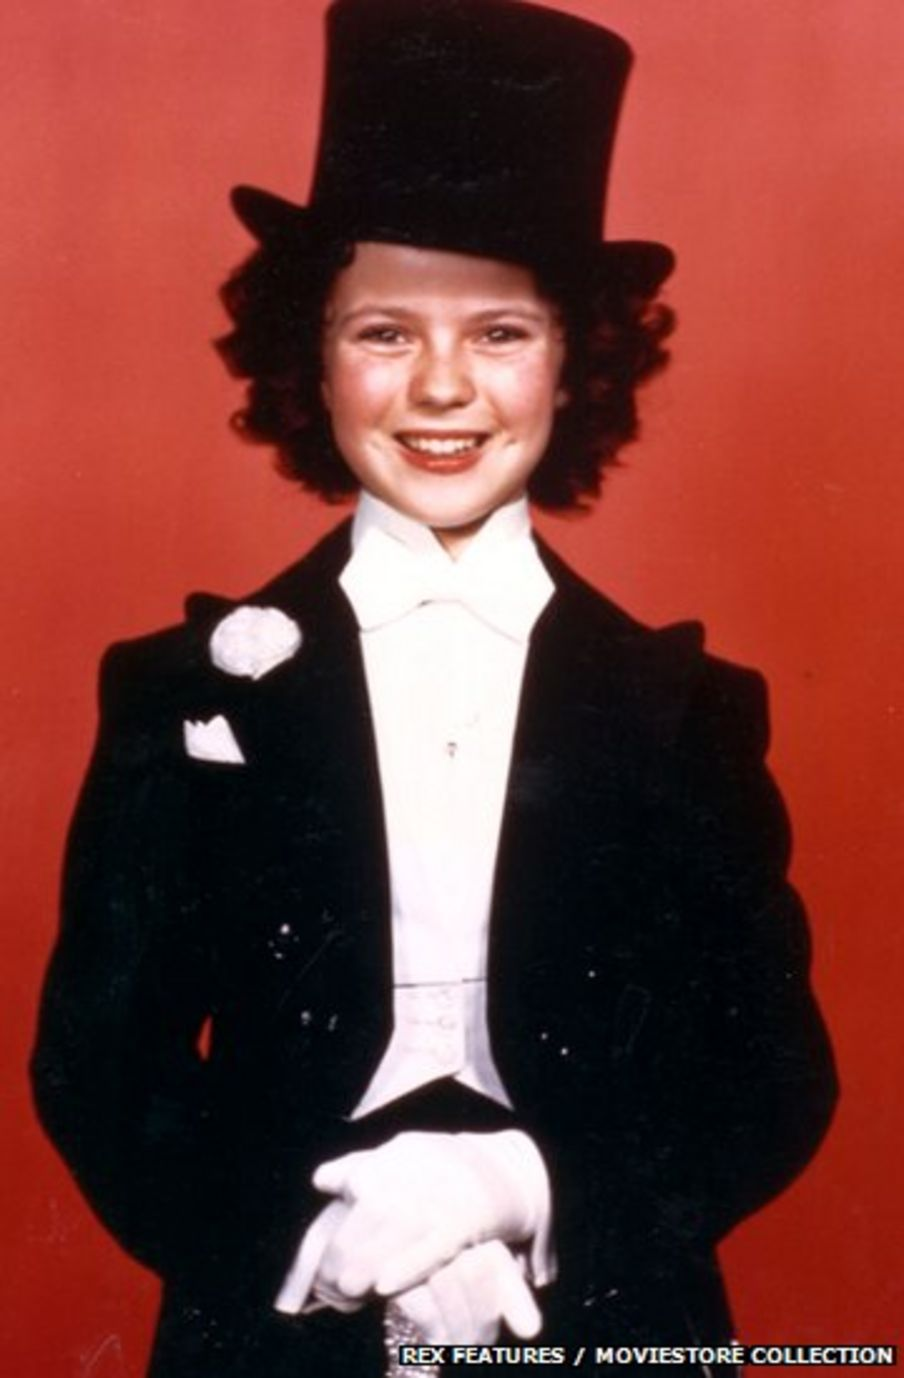 In Pictures: Shirley Temple